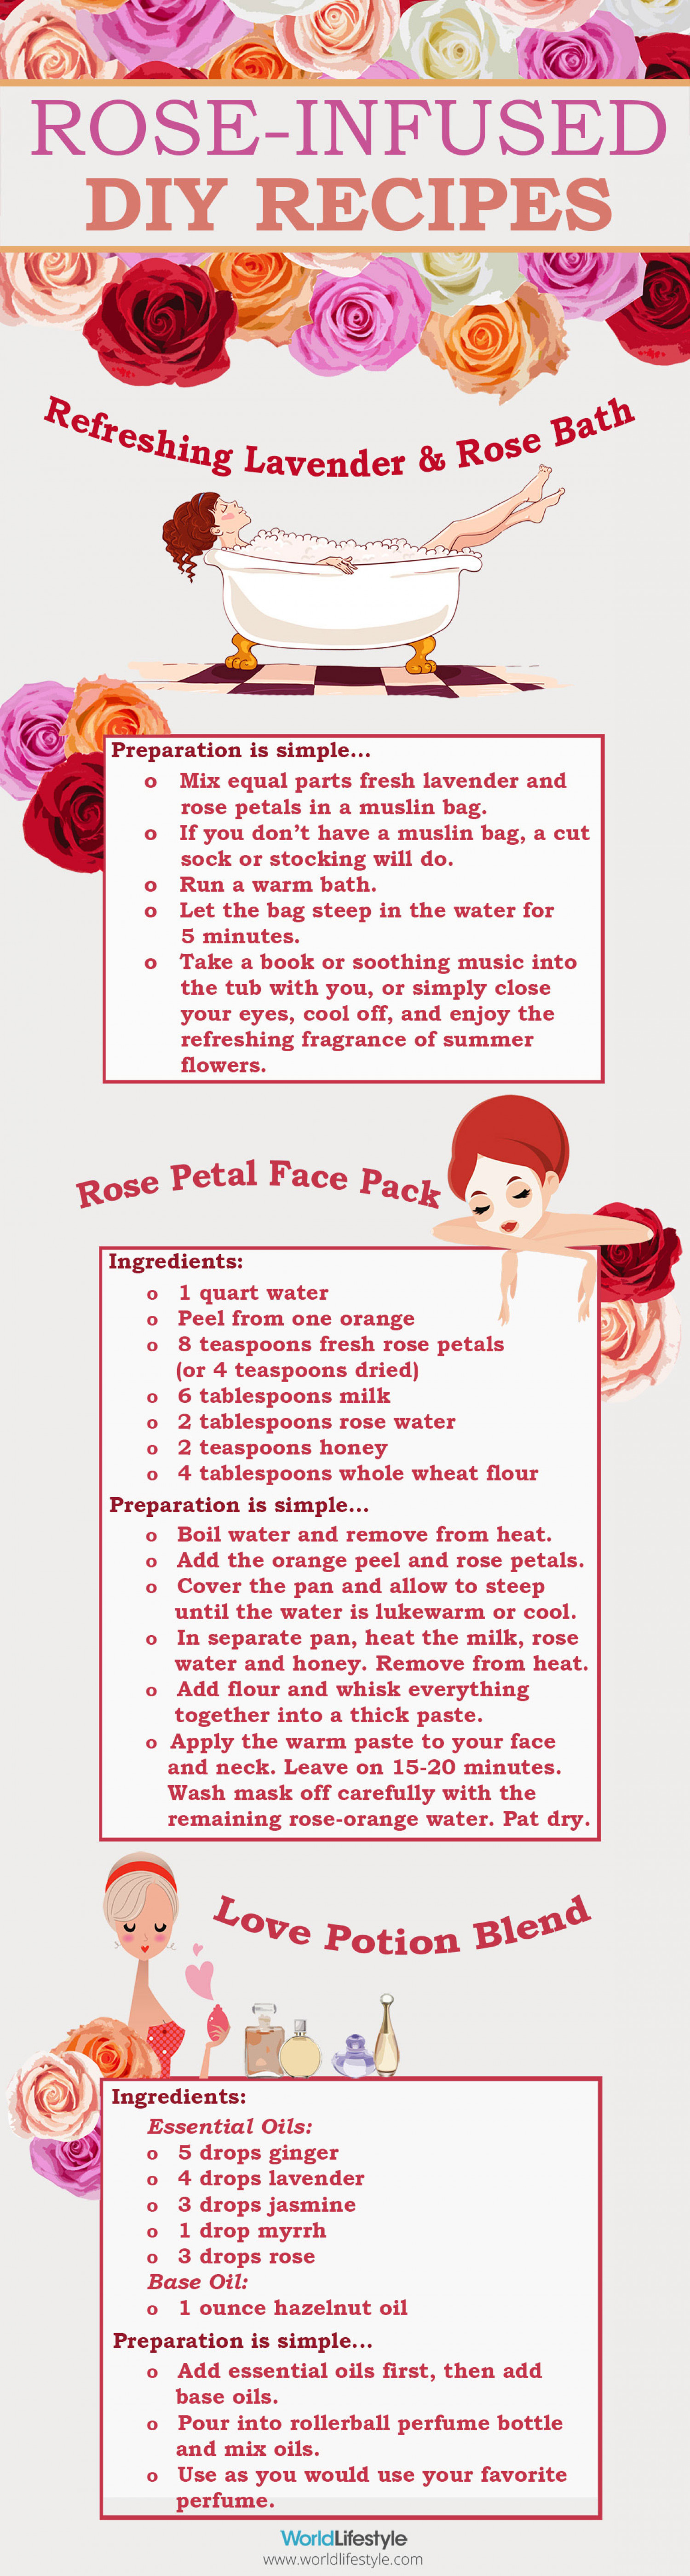 DIY Rose Infused Recipes Infographic